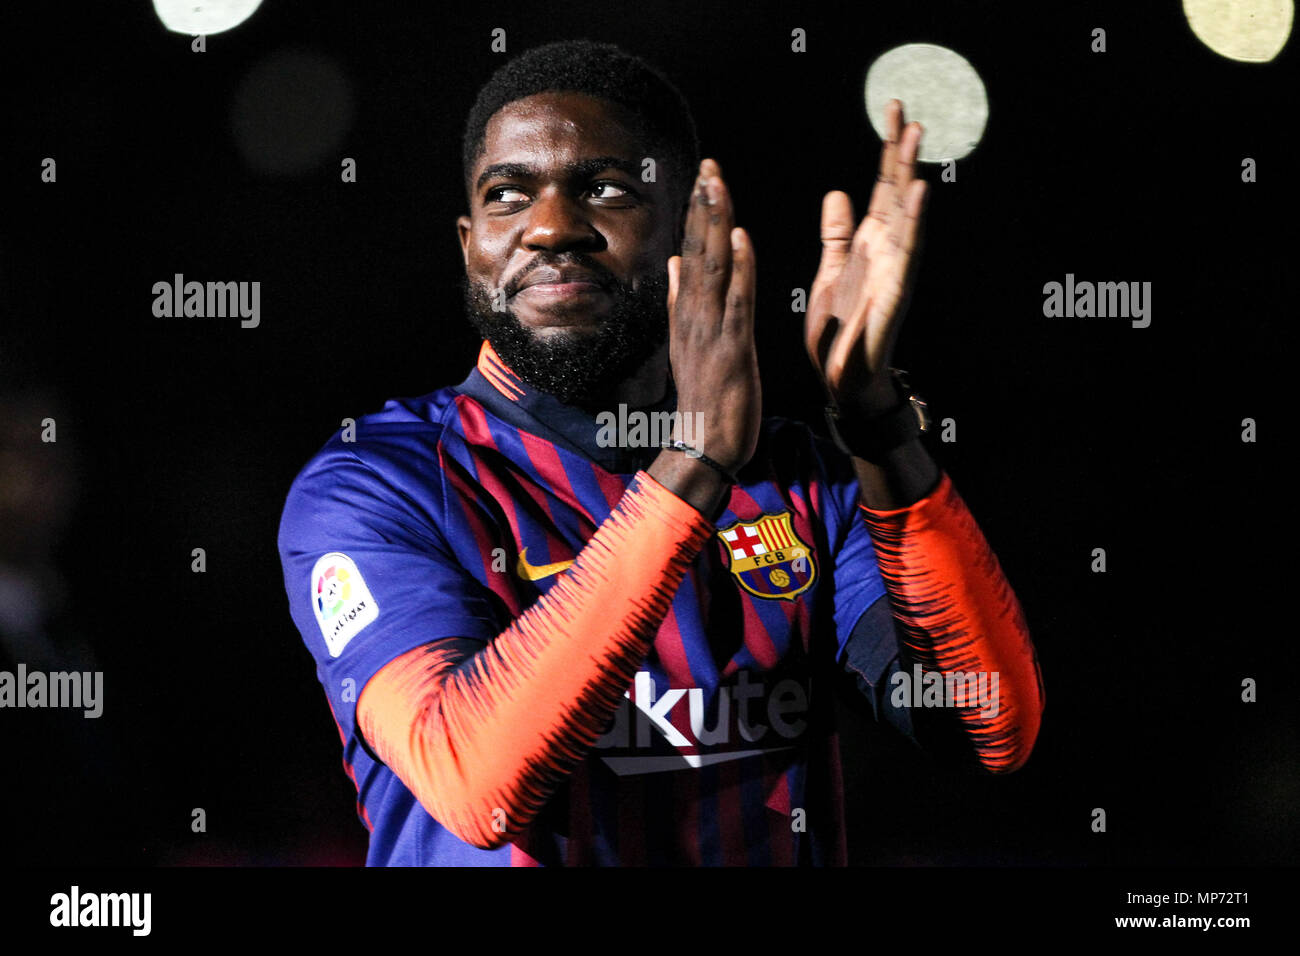 Barcelona, 20th May:  Samuel Umtiti of FC Barcelona during the 2017/2018 LaLiga Santander celebration at Camp Nou on May 20, 2018 in Barcelona, Spain. Stock Photo